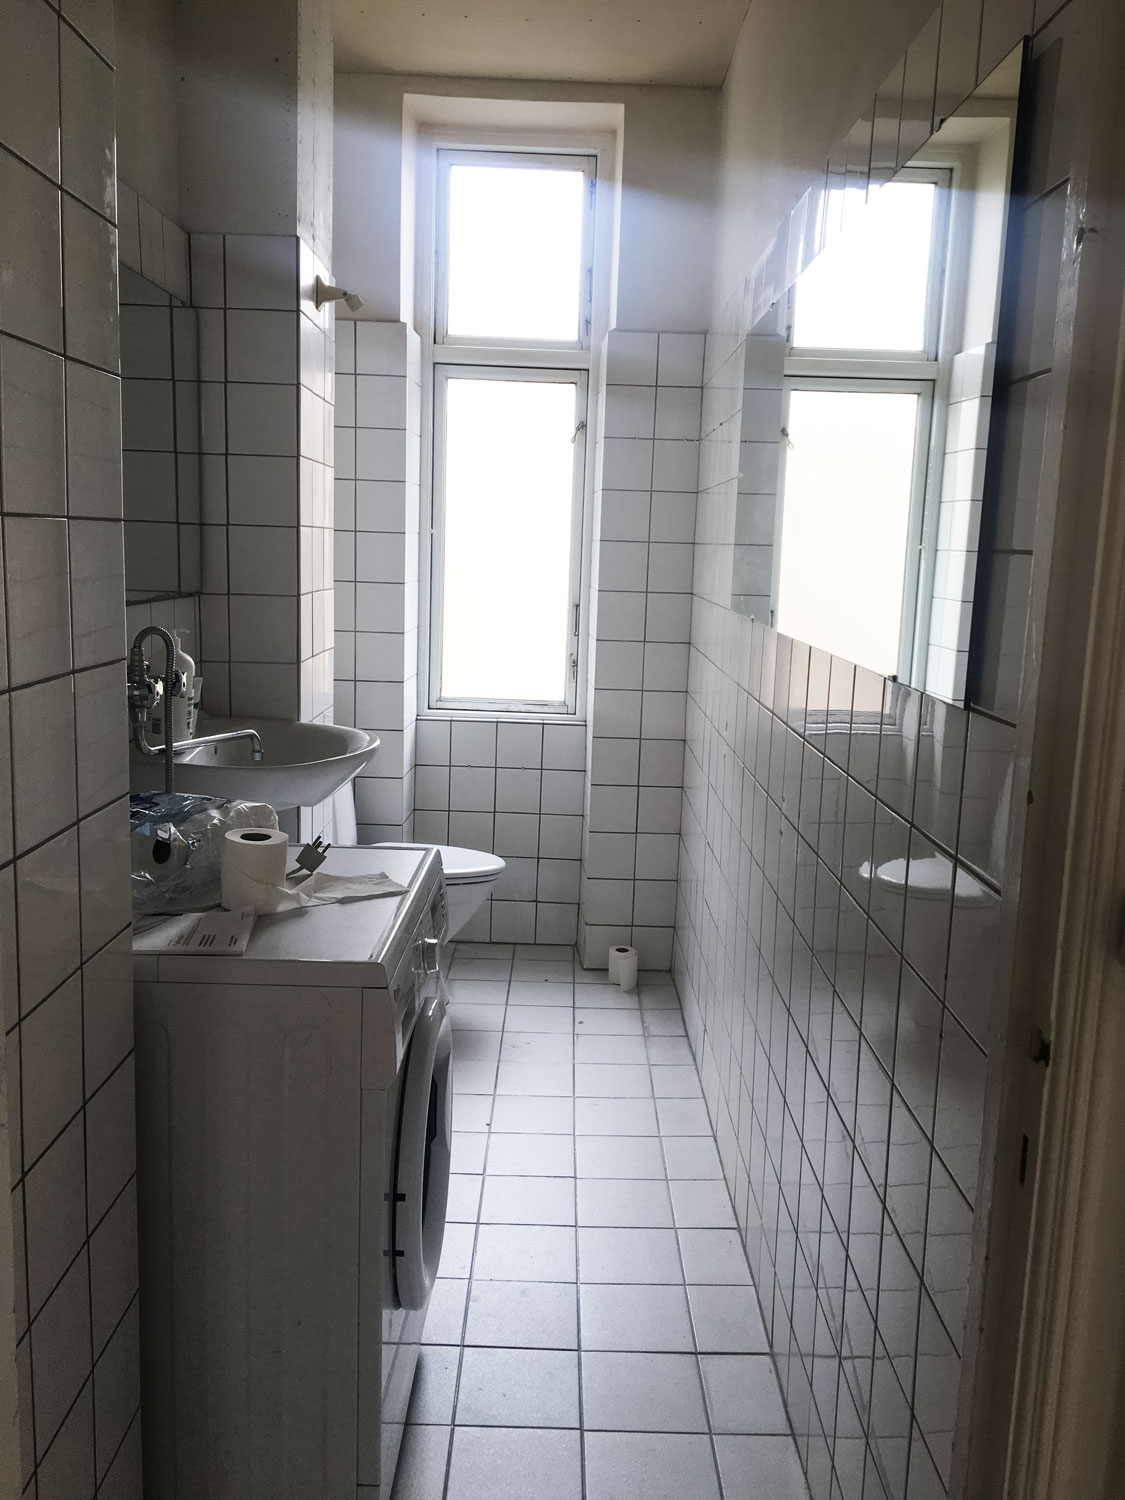 Dating på badet